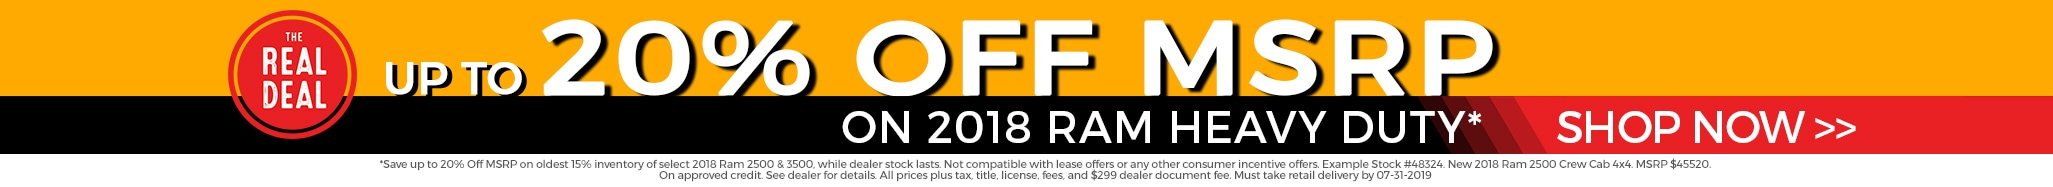 Up to 20% Off MSRP on 2018 Ram Heavy Duty